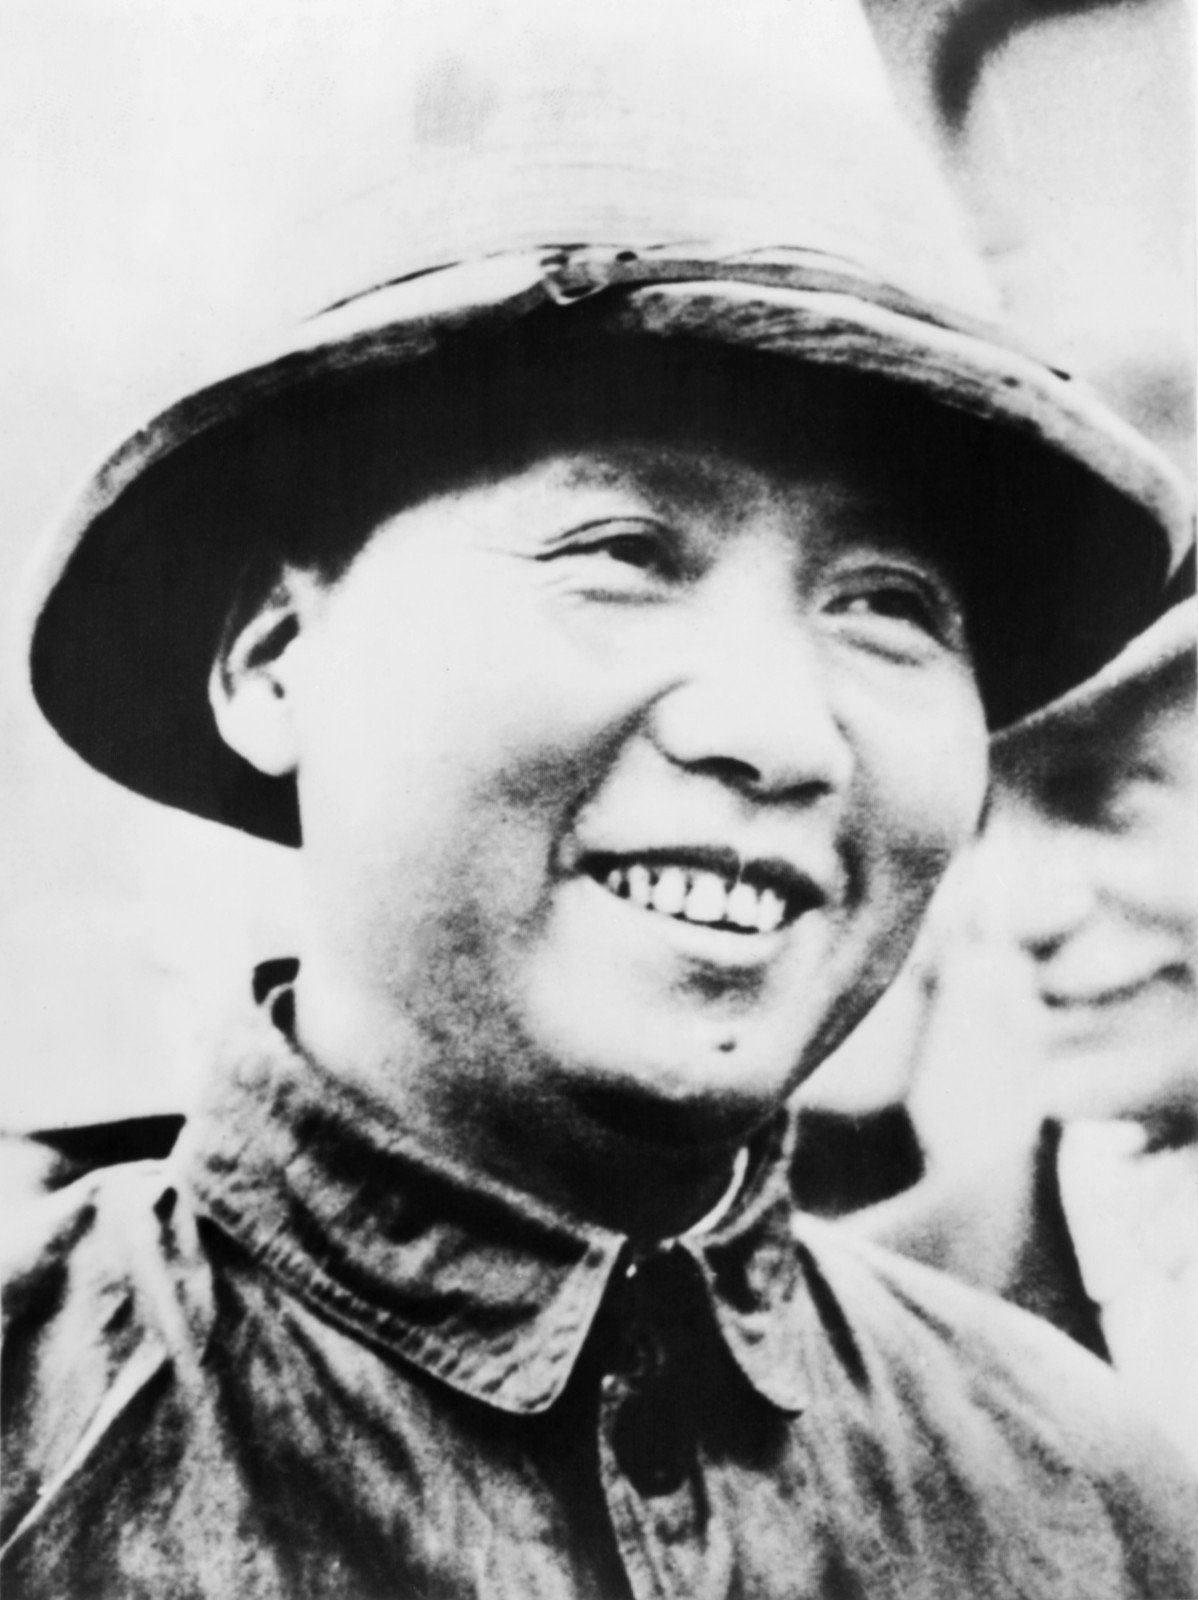 communism styles of mao zedong and kim ii sung Mao zedong communist party communist movement in korea intensified after world war ii the communist the party's eternal president is kim il sung.